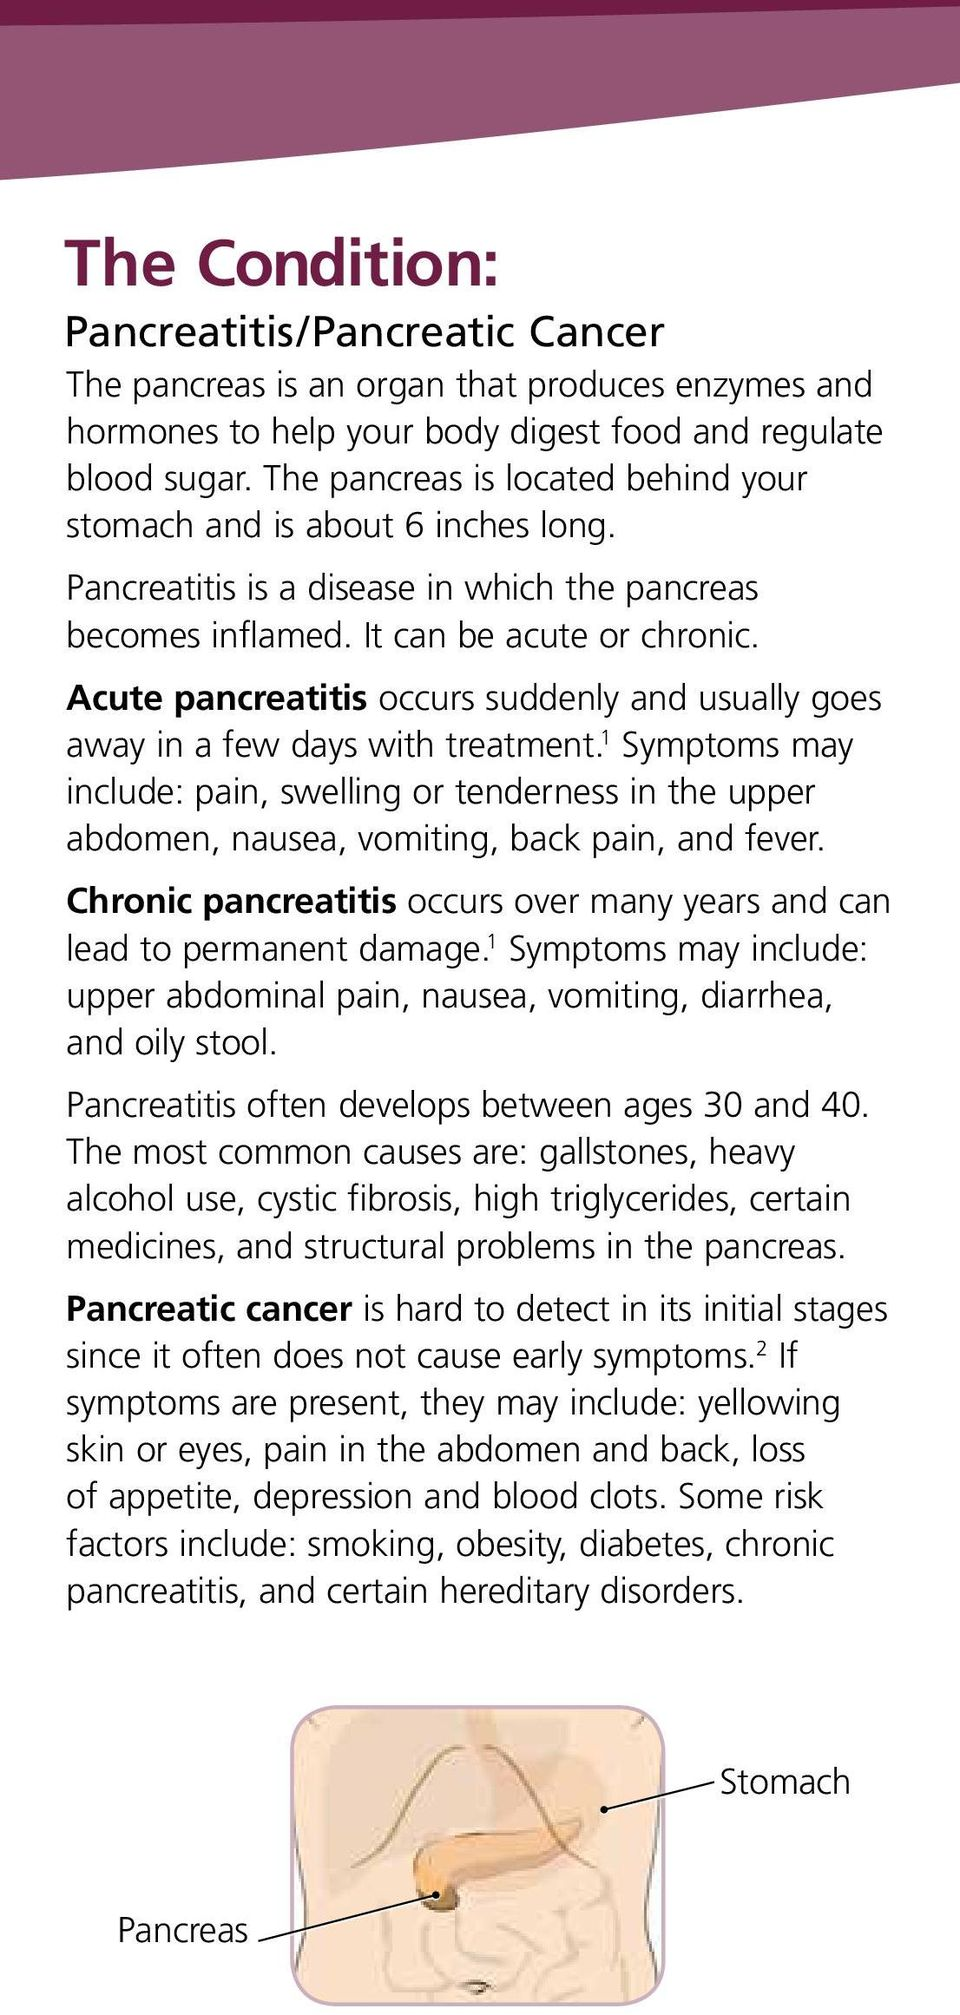 Acute pancreatitis occurs suddenly and usually goes away in a few days with treatment.